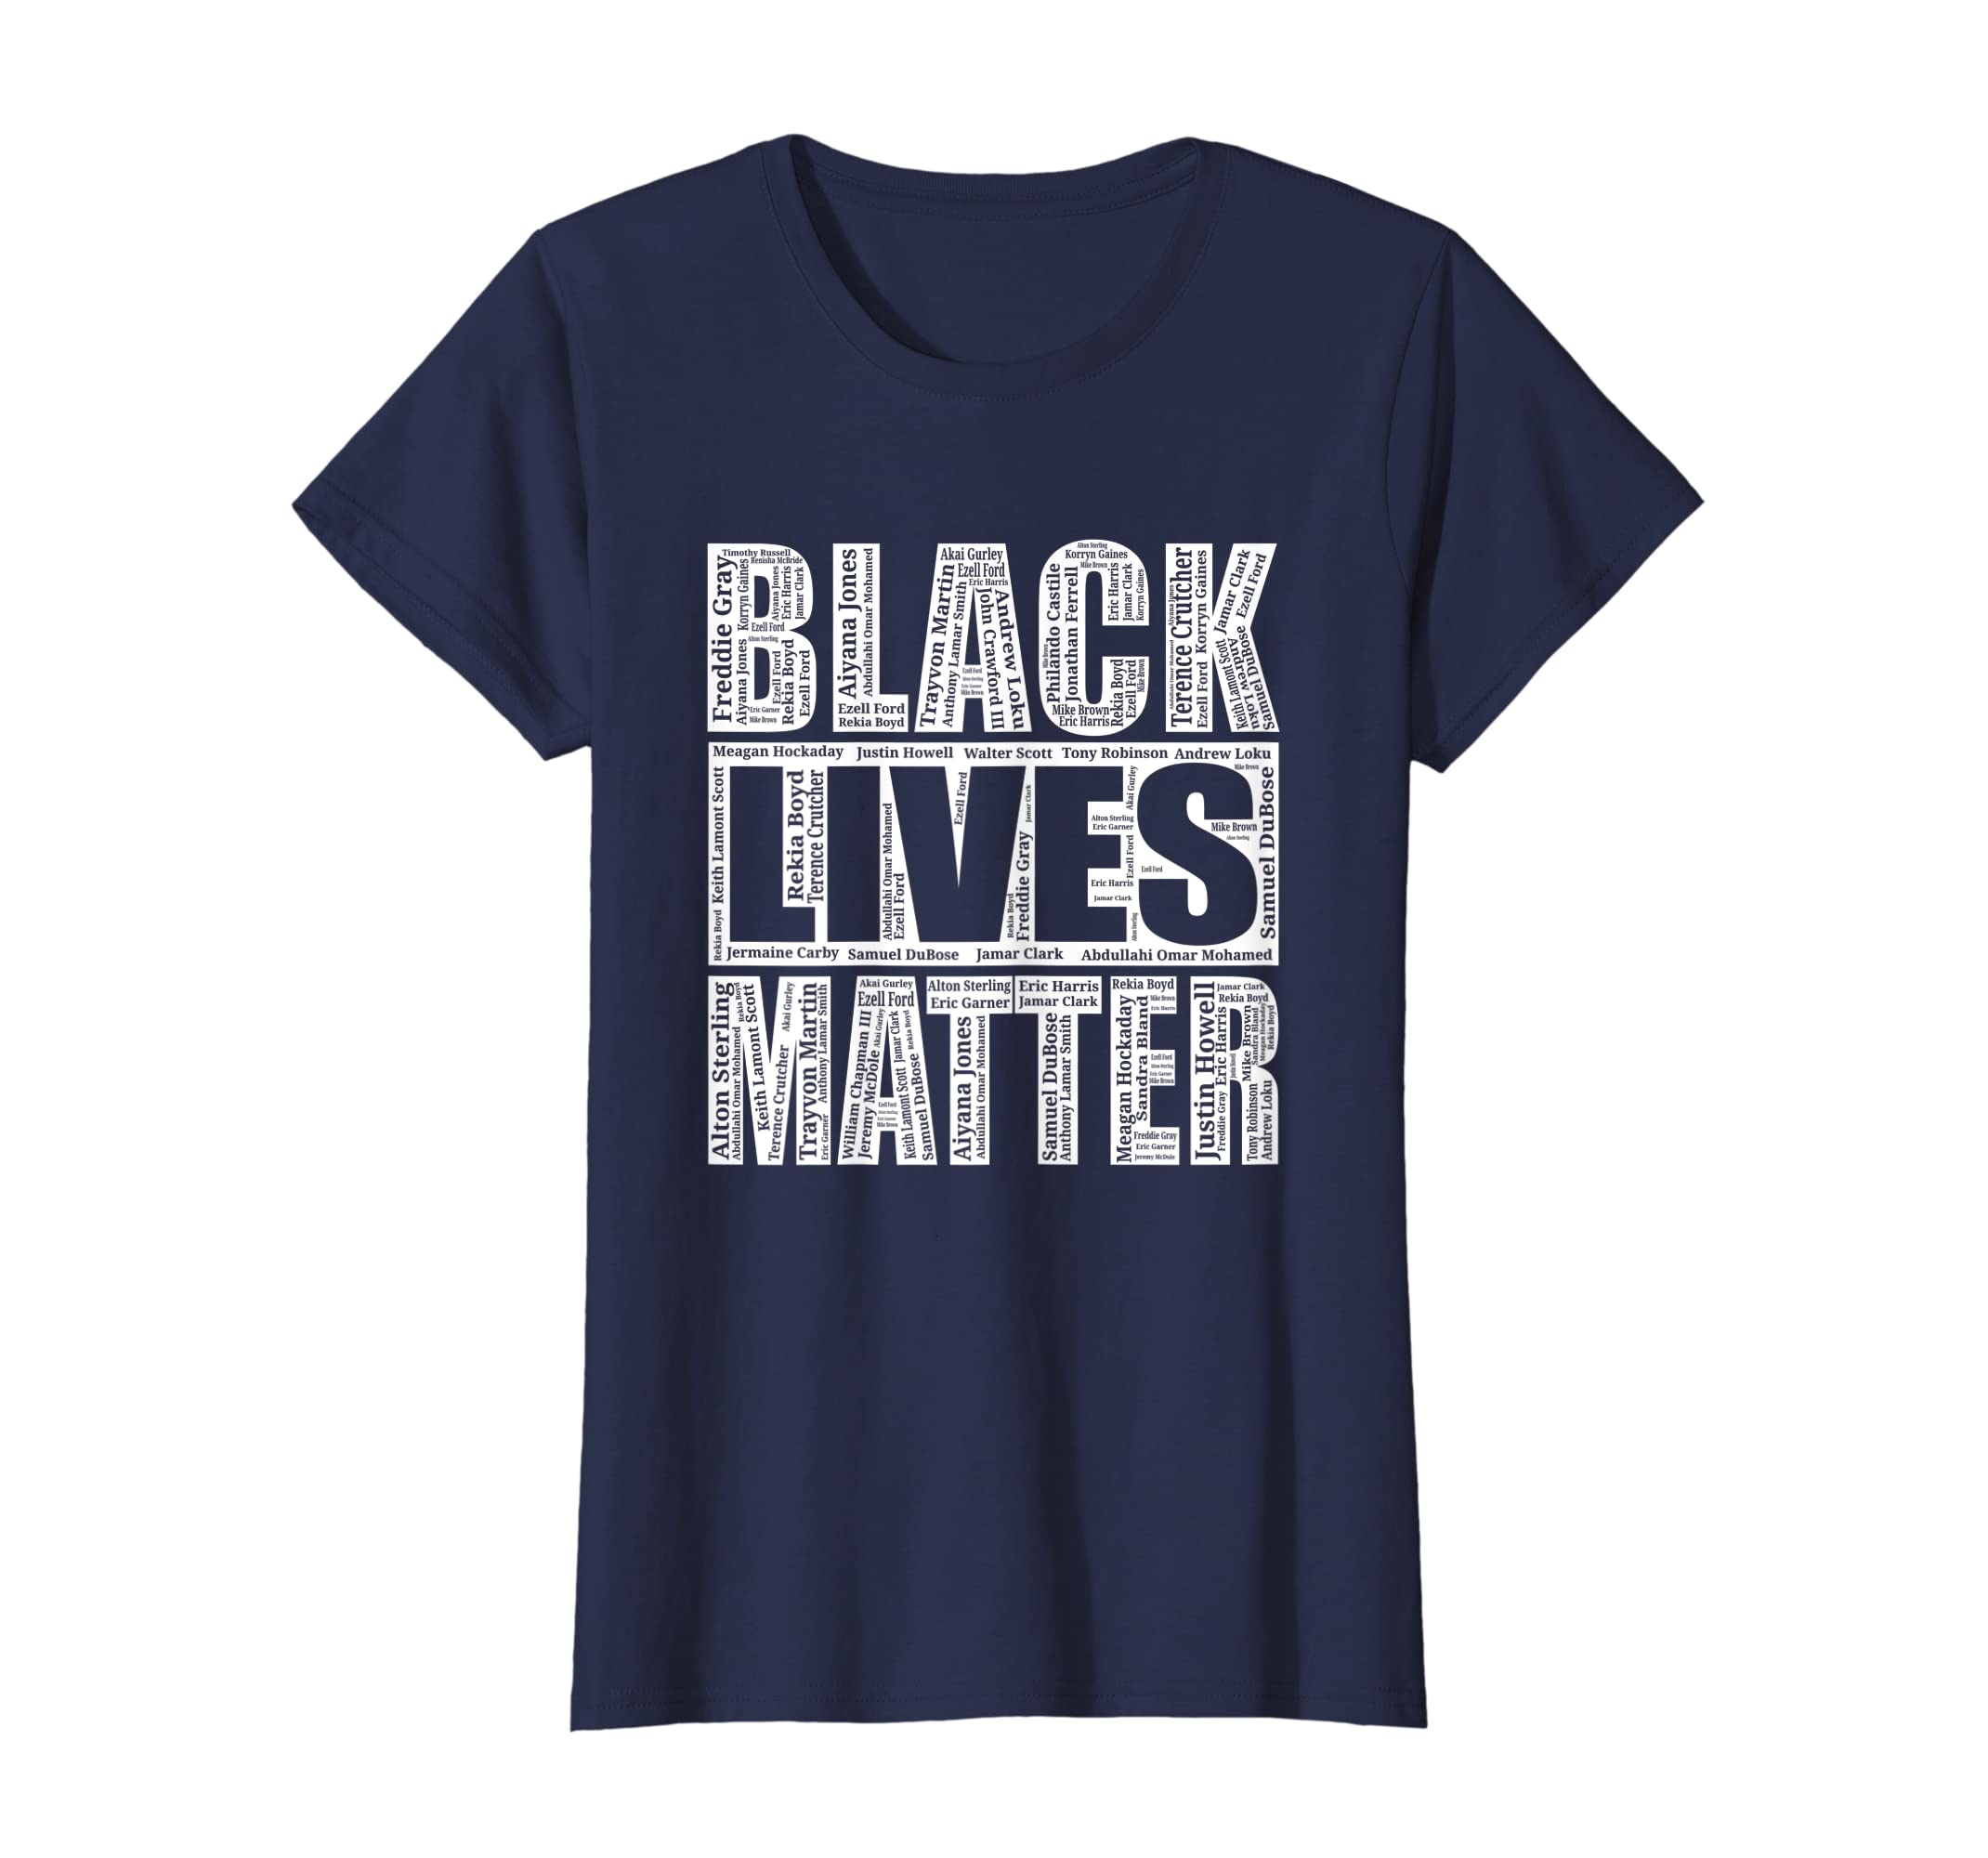 f36f5a53 Amazon.com: Black Lives Matter T-Shirt With Names Of Victims - BLM Shirt:  Clothing